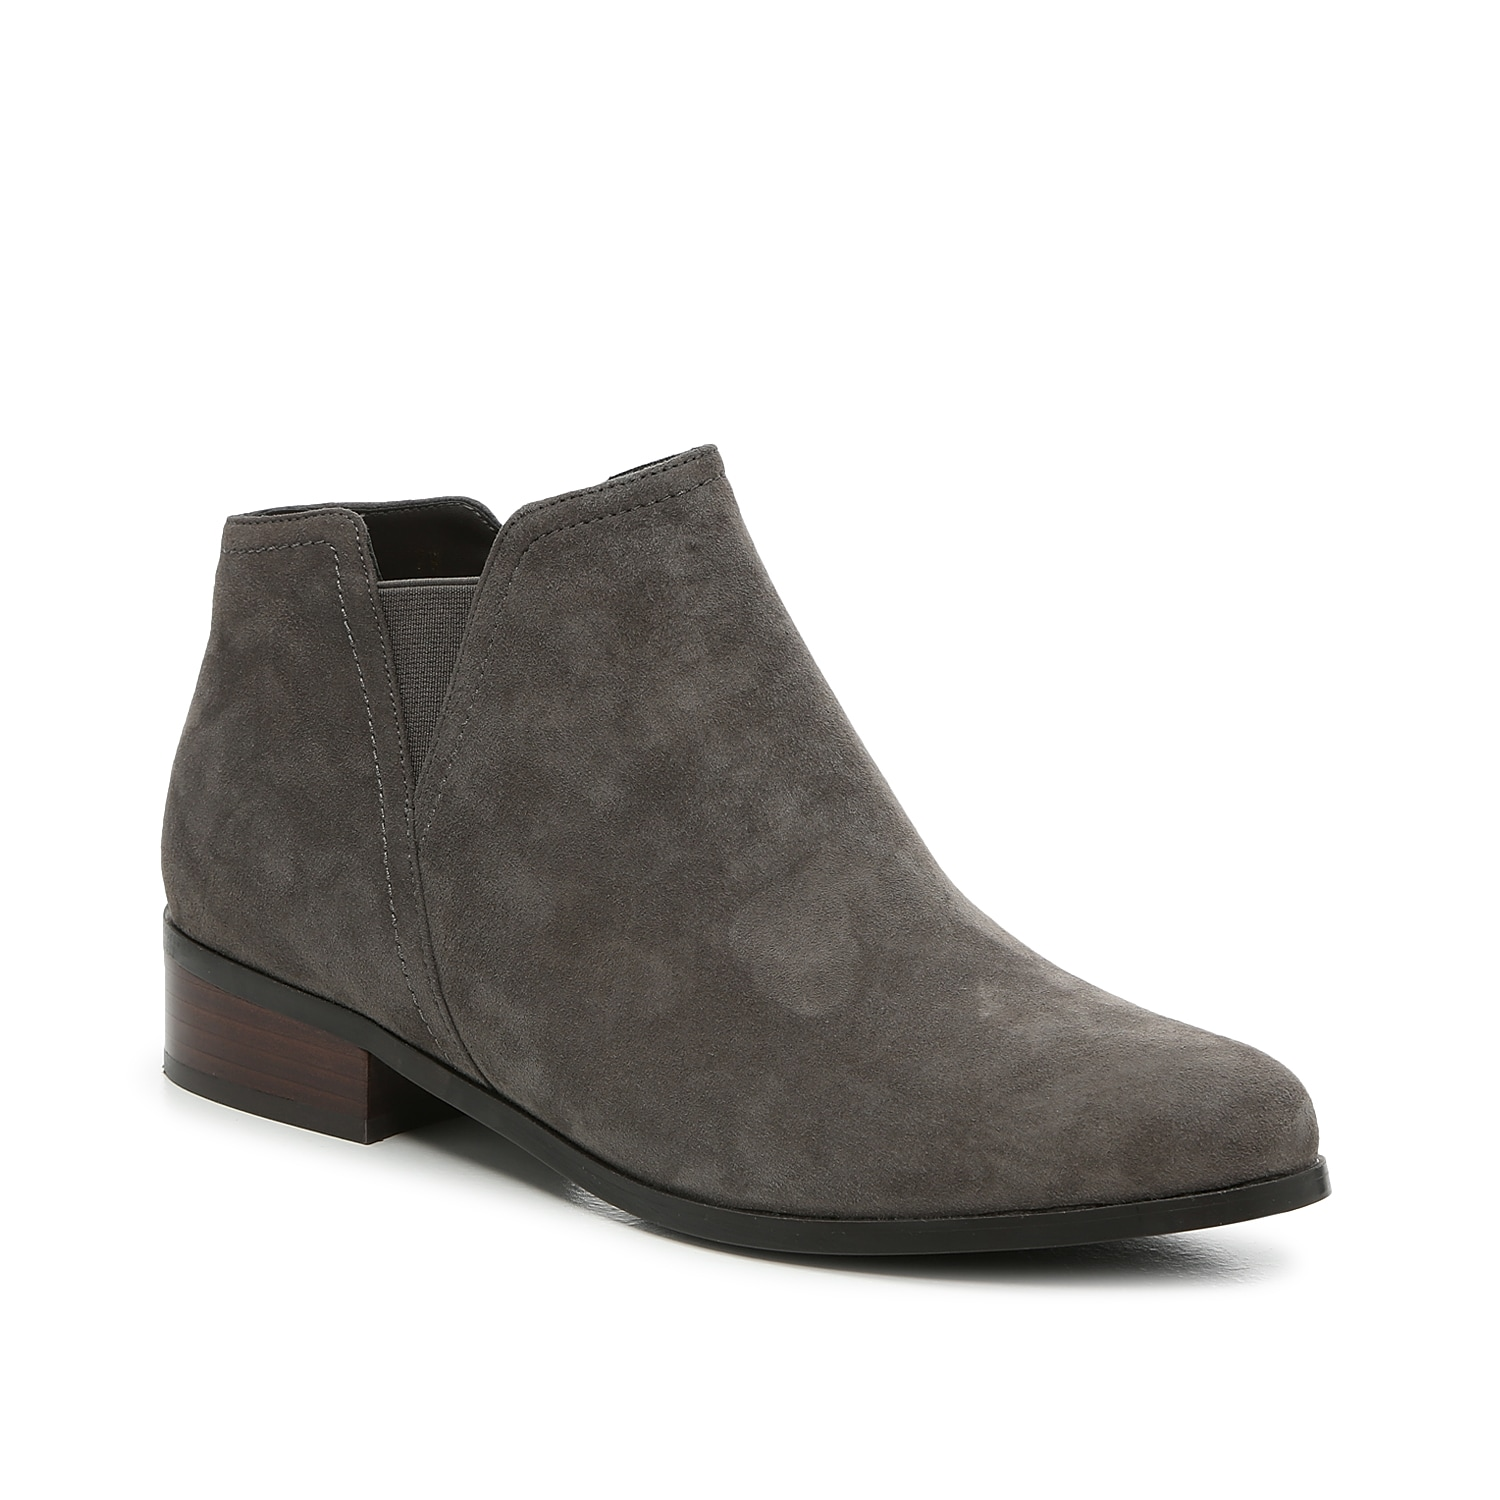 The Ravit ankle boot from VANELi is a low-profile pair that\\\'s styled with V-shaped cutouts and a hi-low topline. A modest, low heel provides a simple lift. Click here for Boot Measuring Guide.